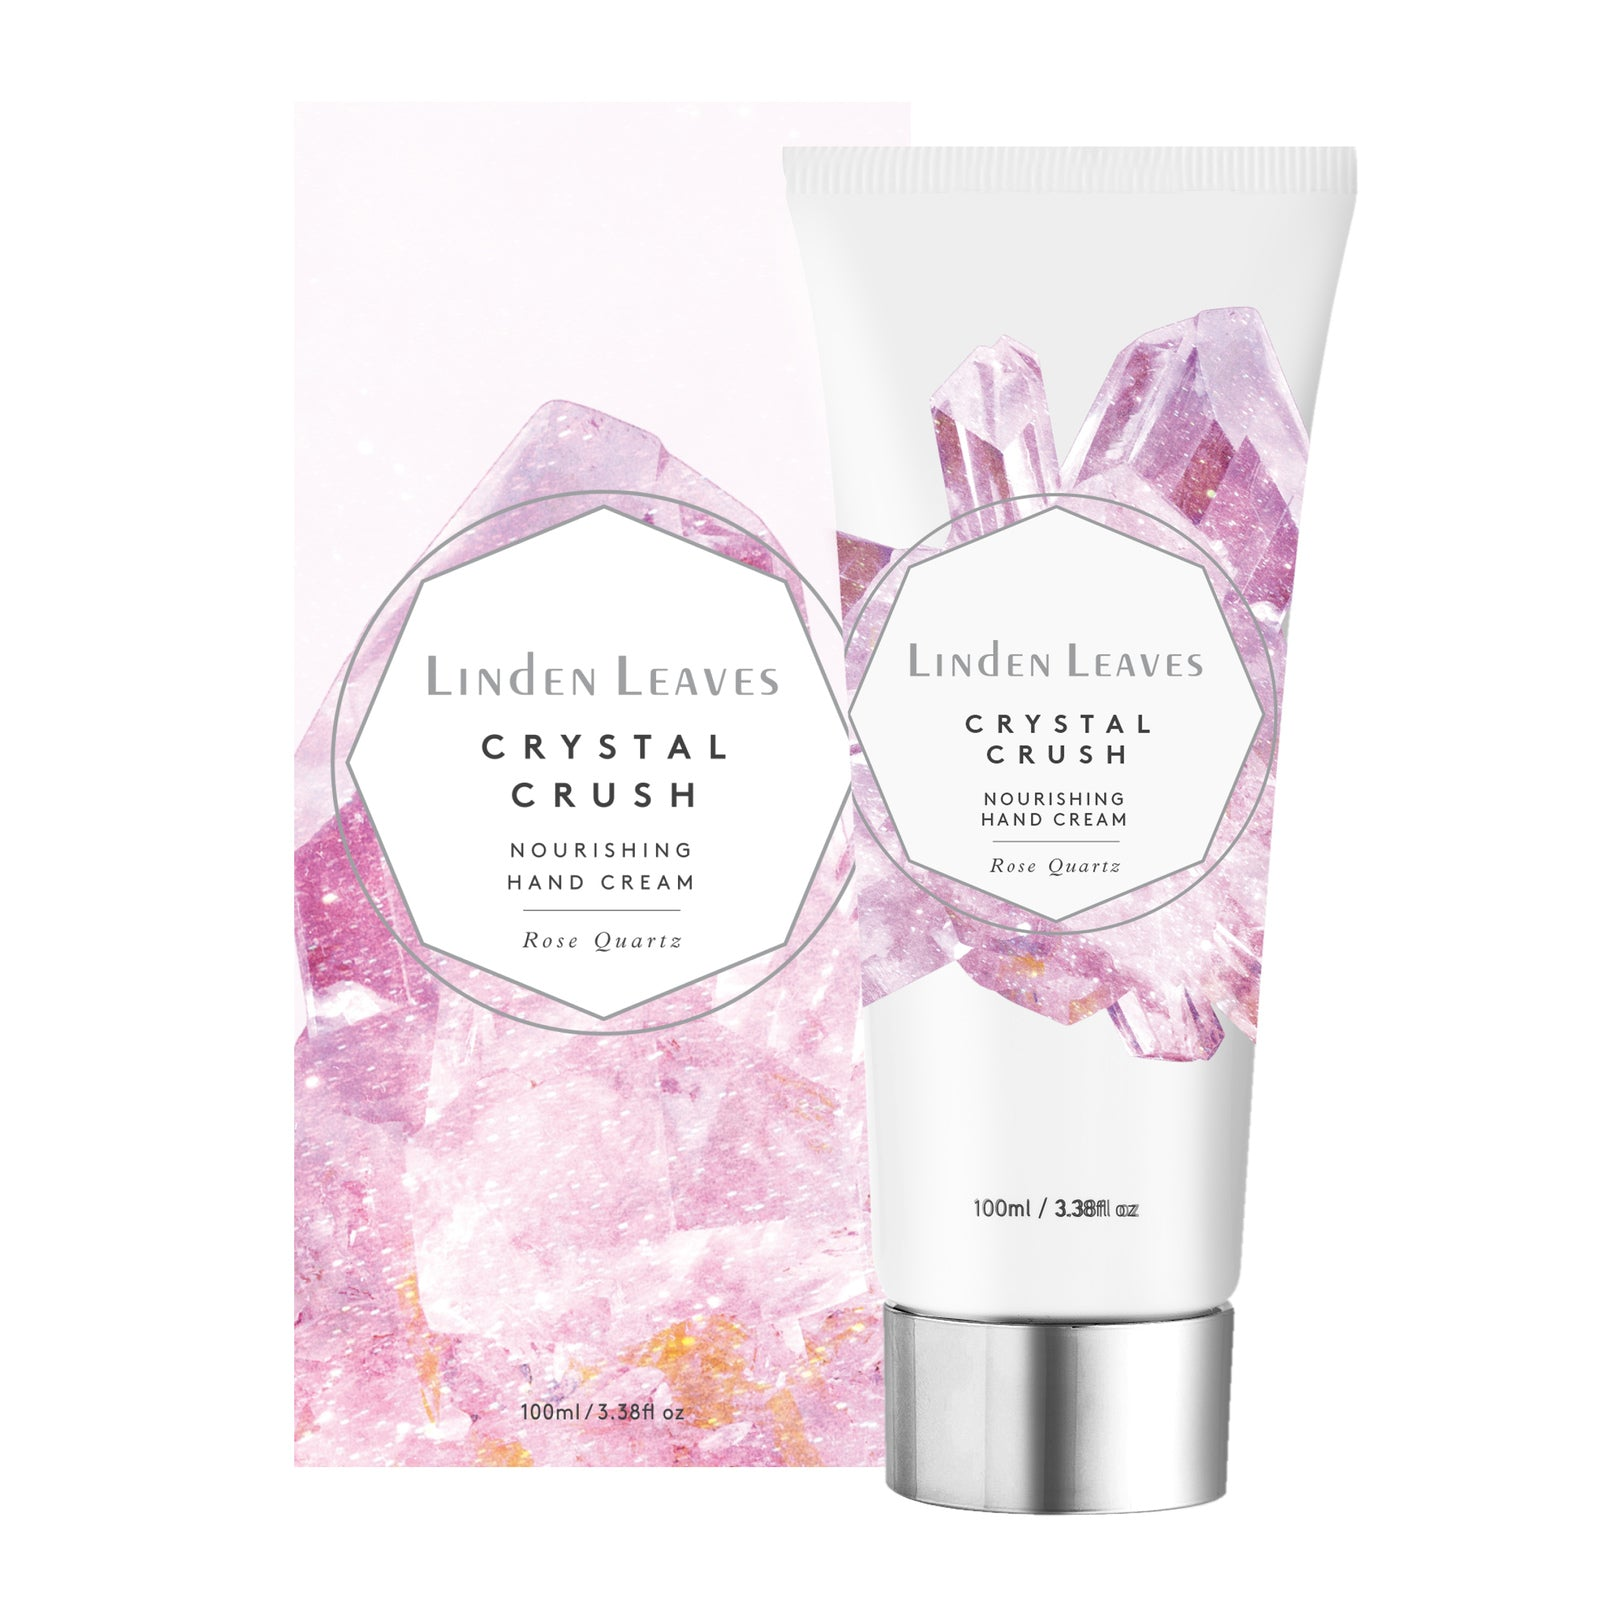 Linden Leaves Rose Quartz Nourishing Hand Cream